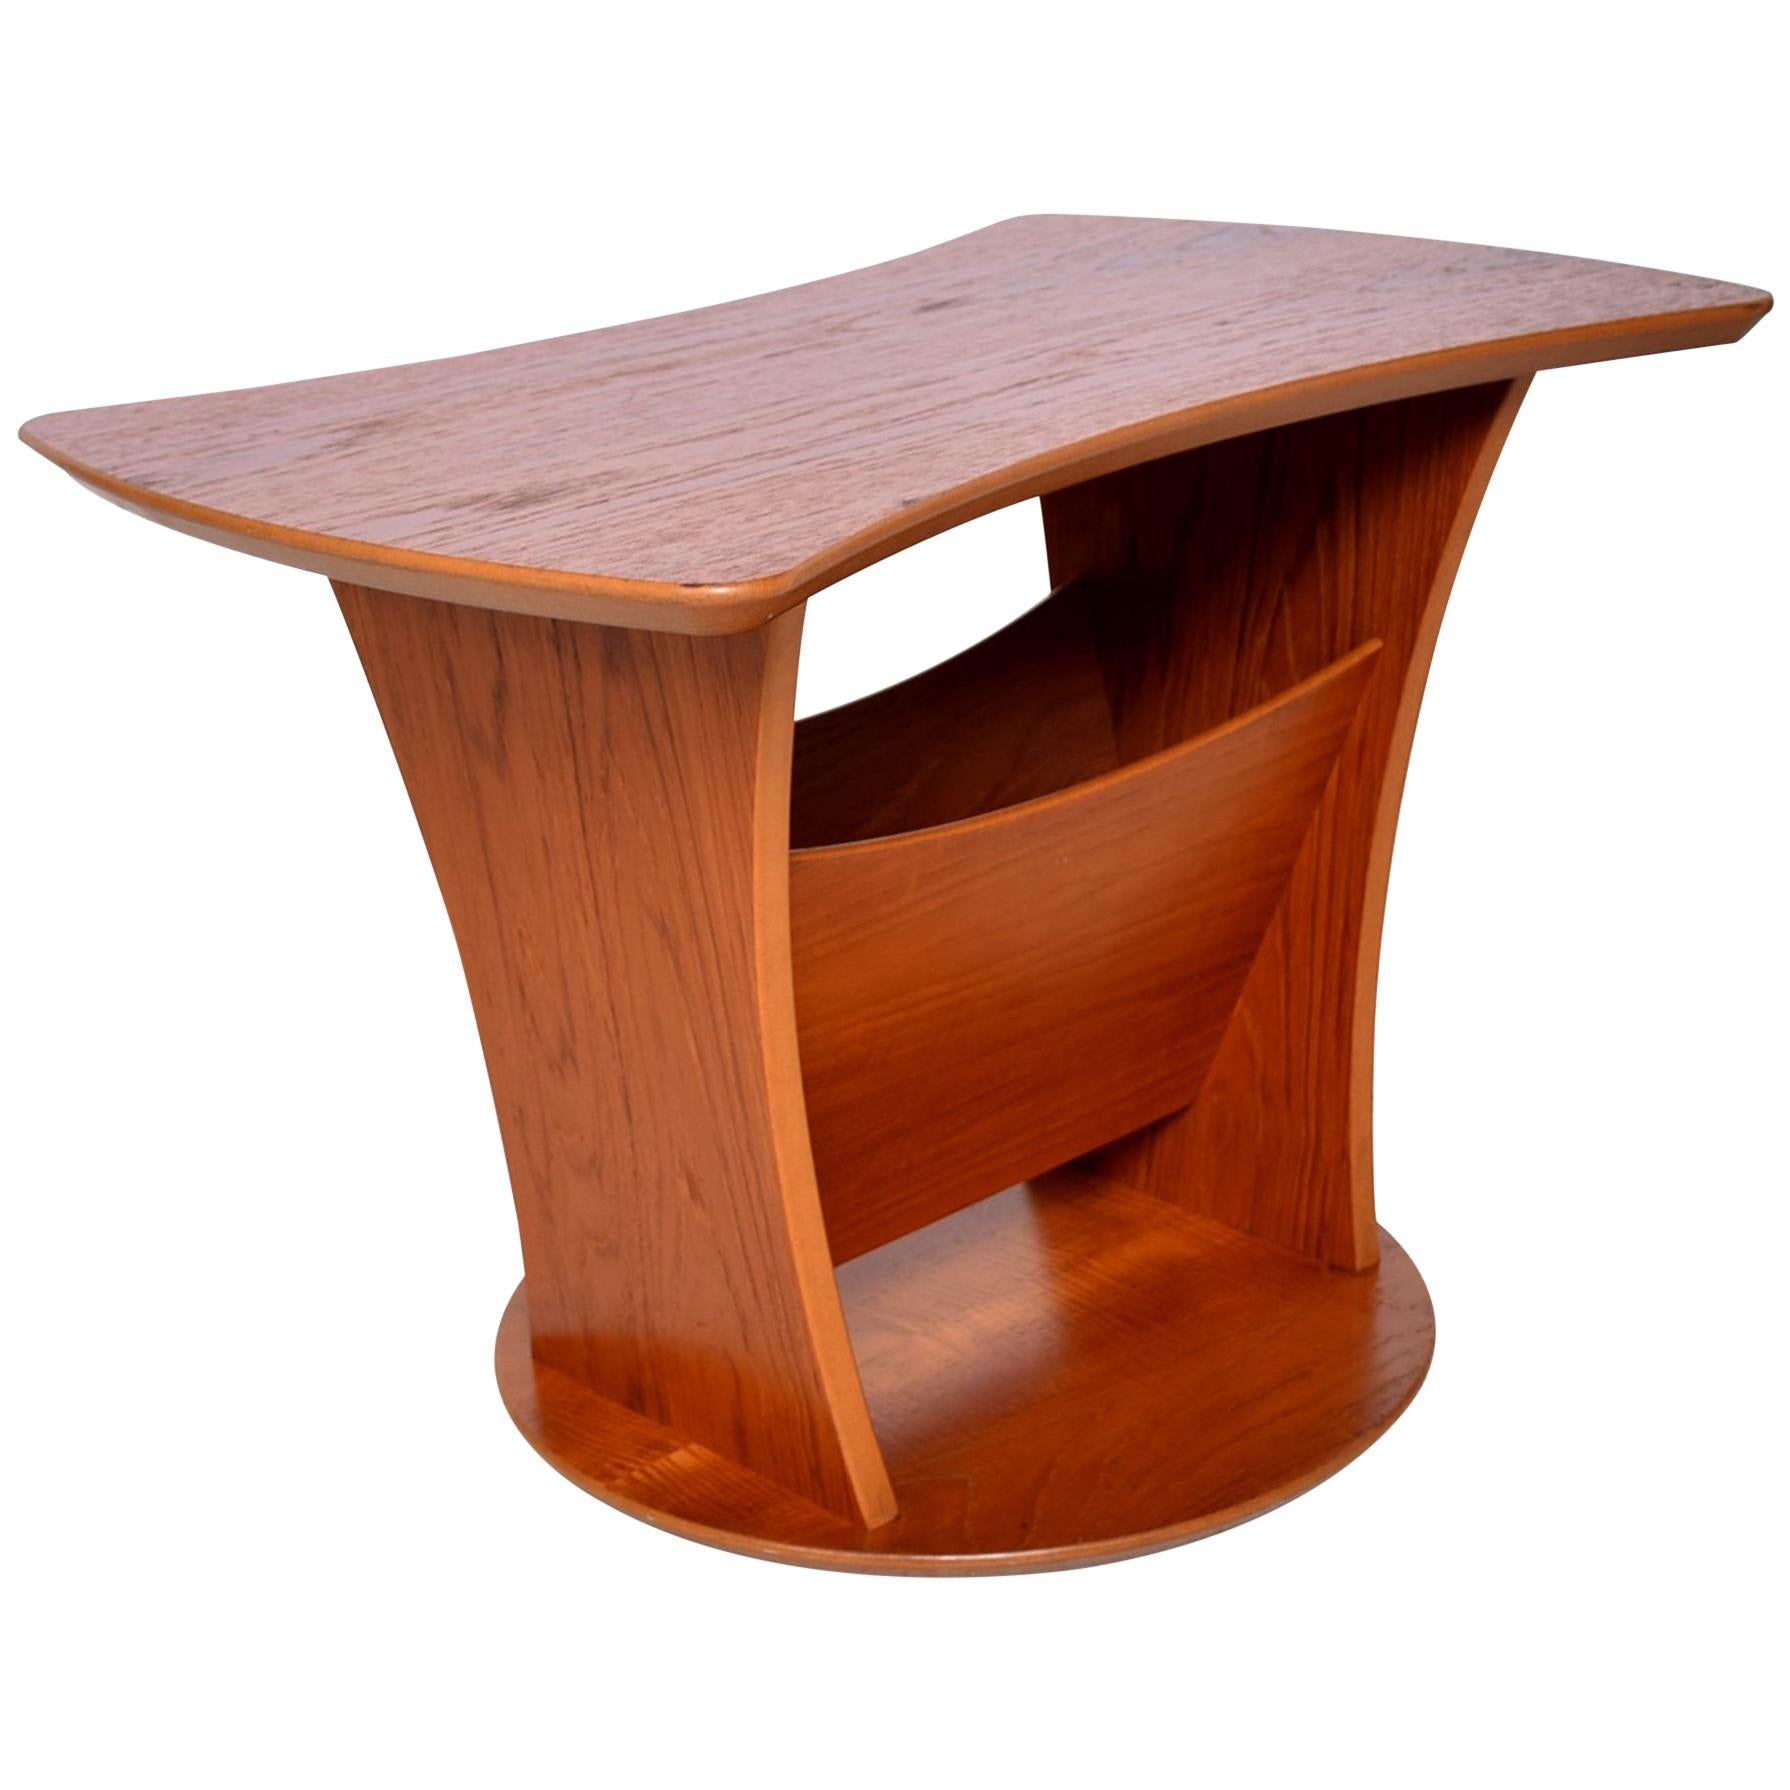 Modern Sophistication Sculptural Teak Side Table & Magazine Holder 1980s Denmark